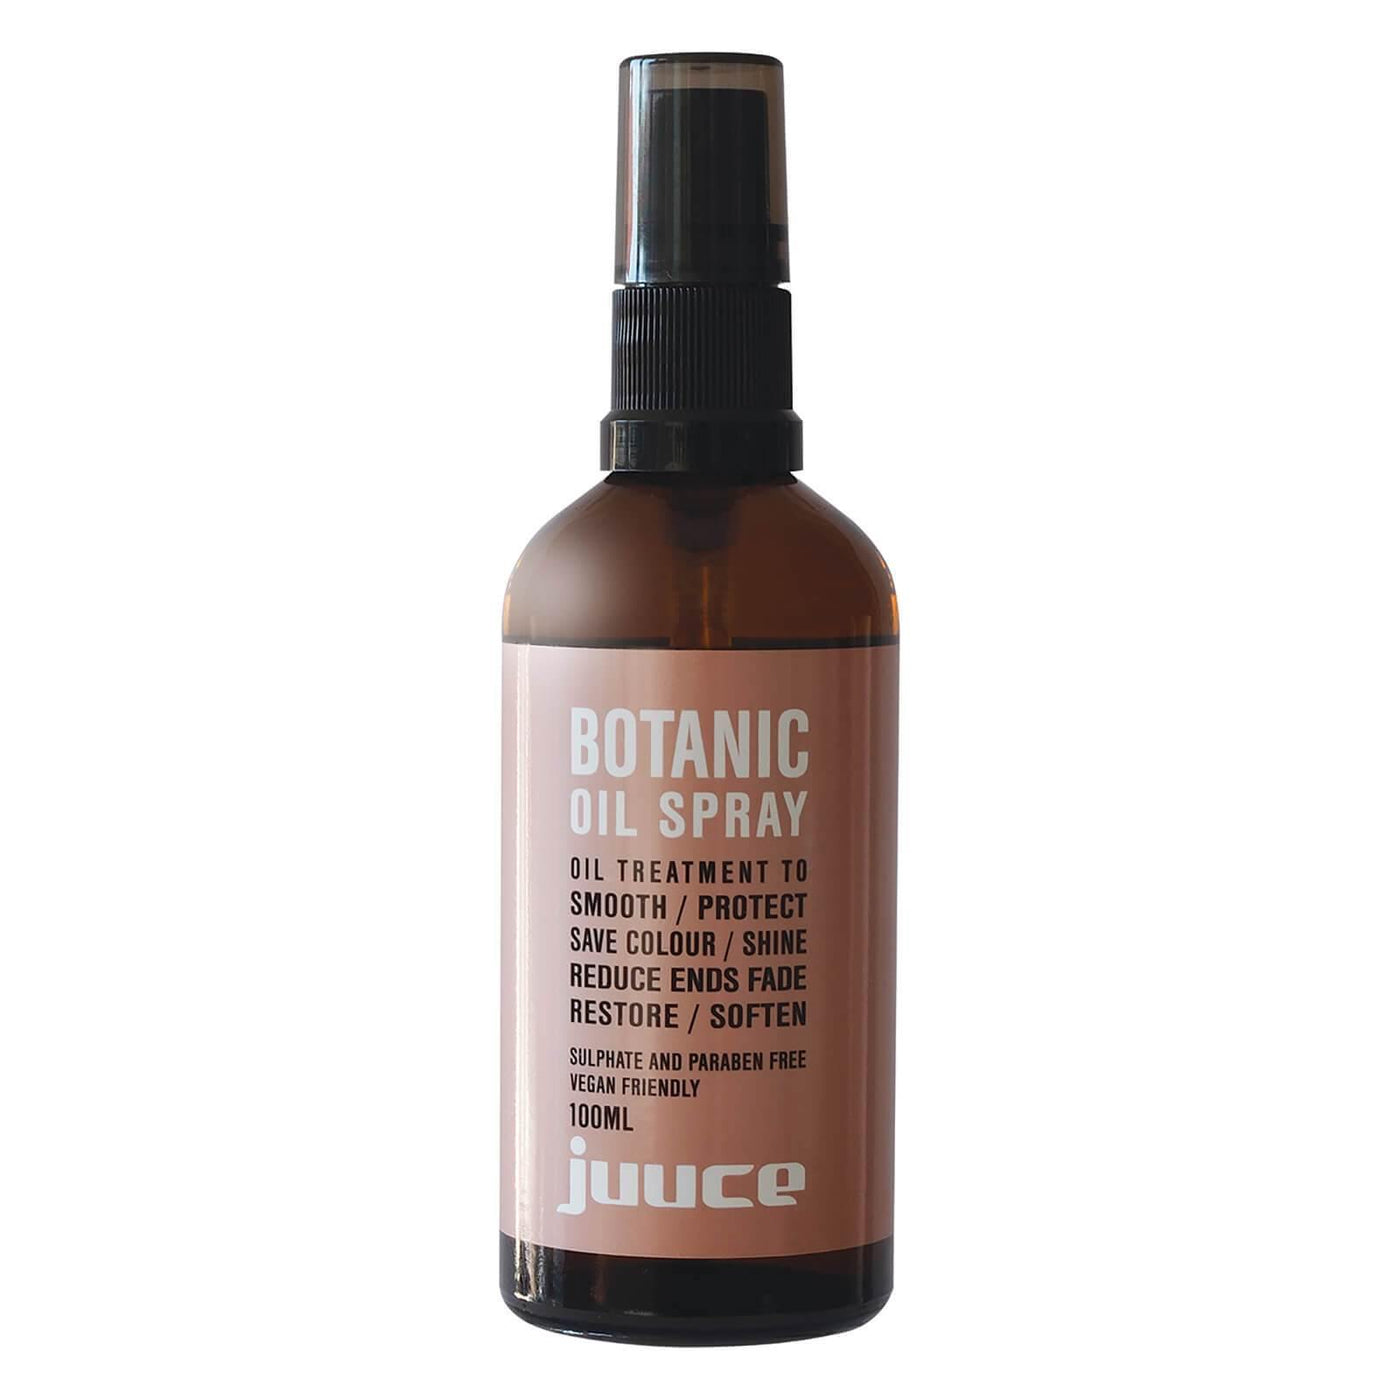 Juuce Botanic Oil Spray 100ml - Norris Hair & Beauty